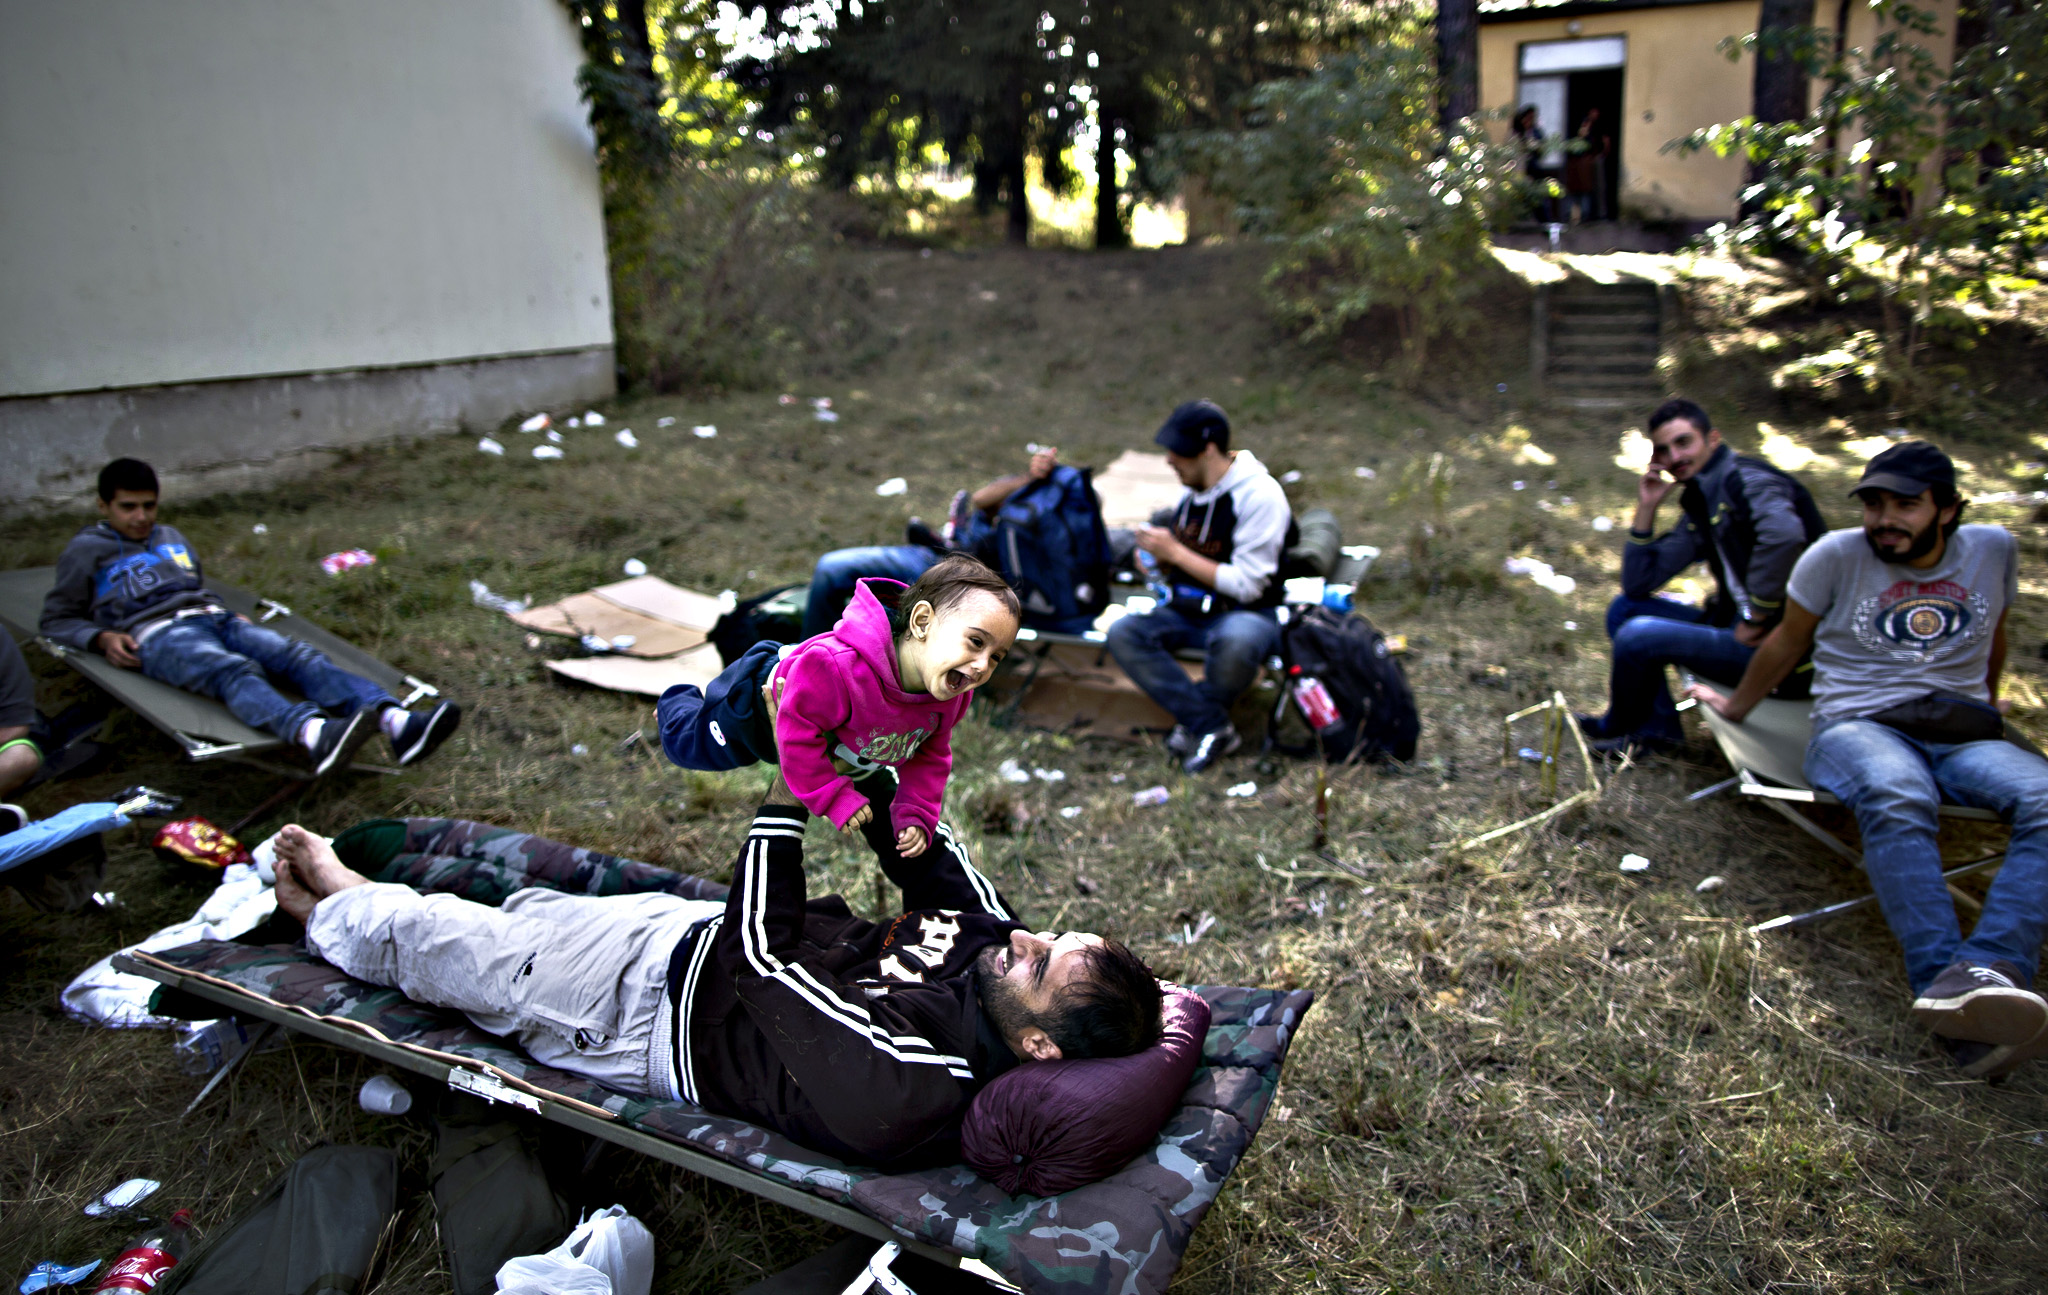 A Syrian refugee man plays with his daughter after spending night near an abandoned military barrack in Beli Manastir, near Hungarian border, northeast Croatia, Friday, Sept. 18, 2015. Croatian police say some 13,300 migrants have entered the country from Serbia since the first groups started arriving more than two days ago